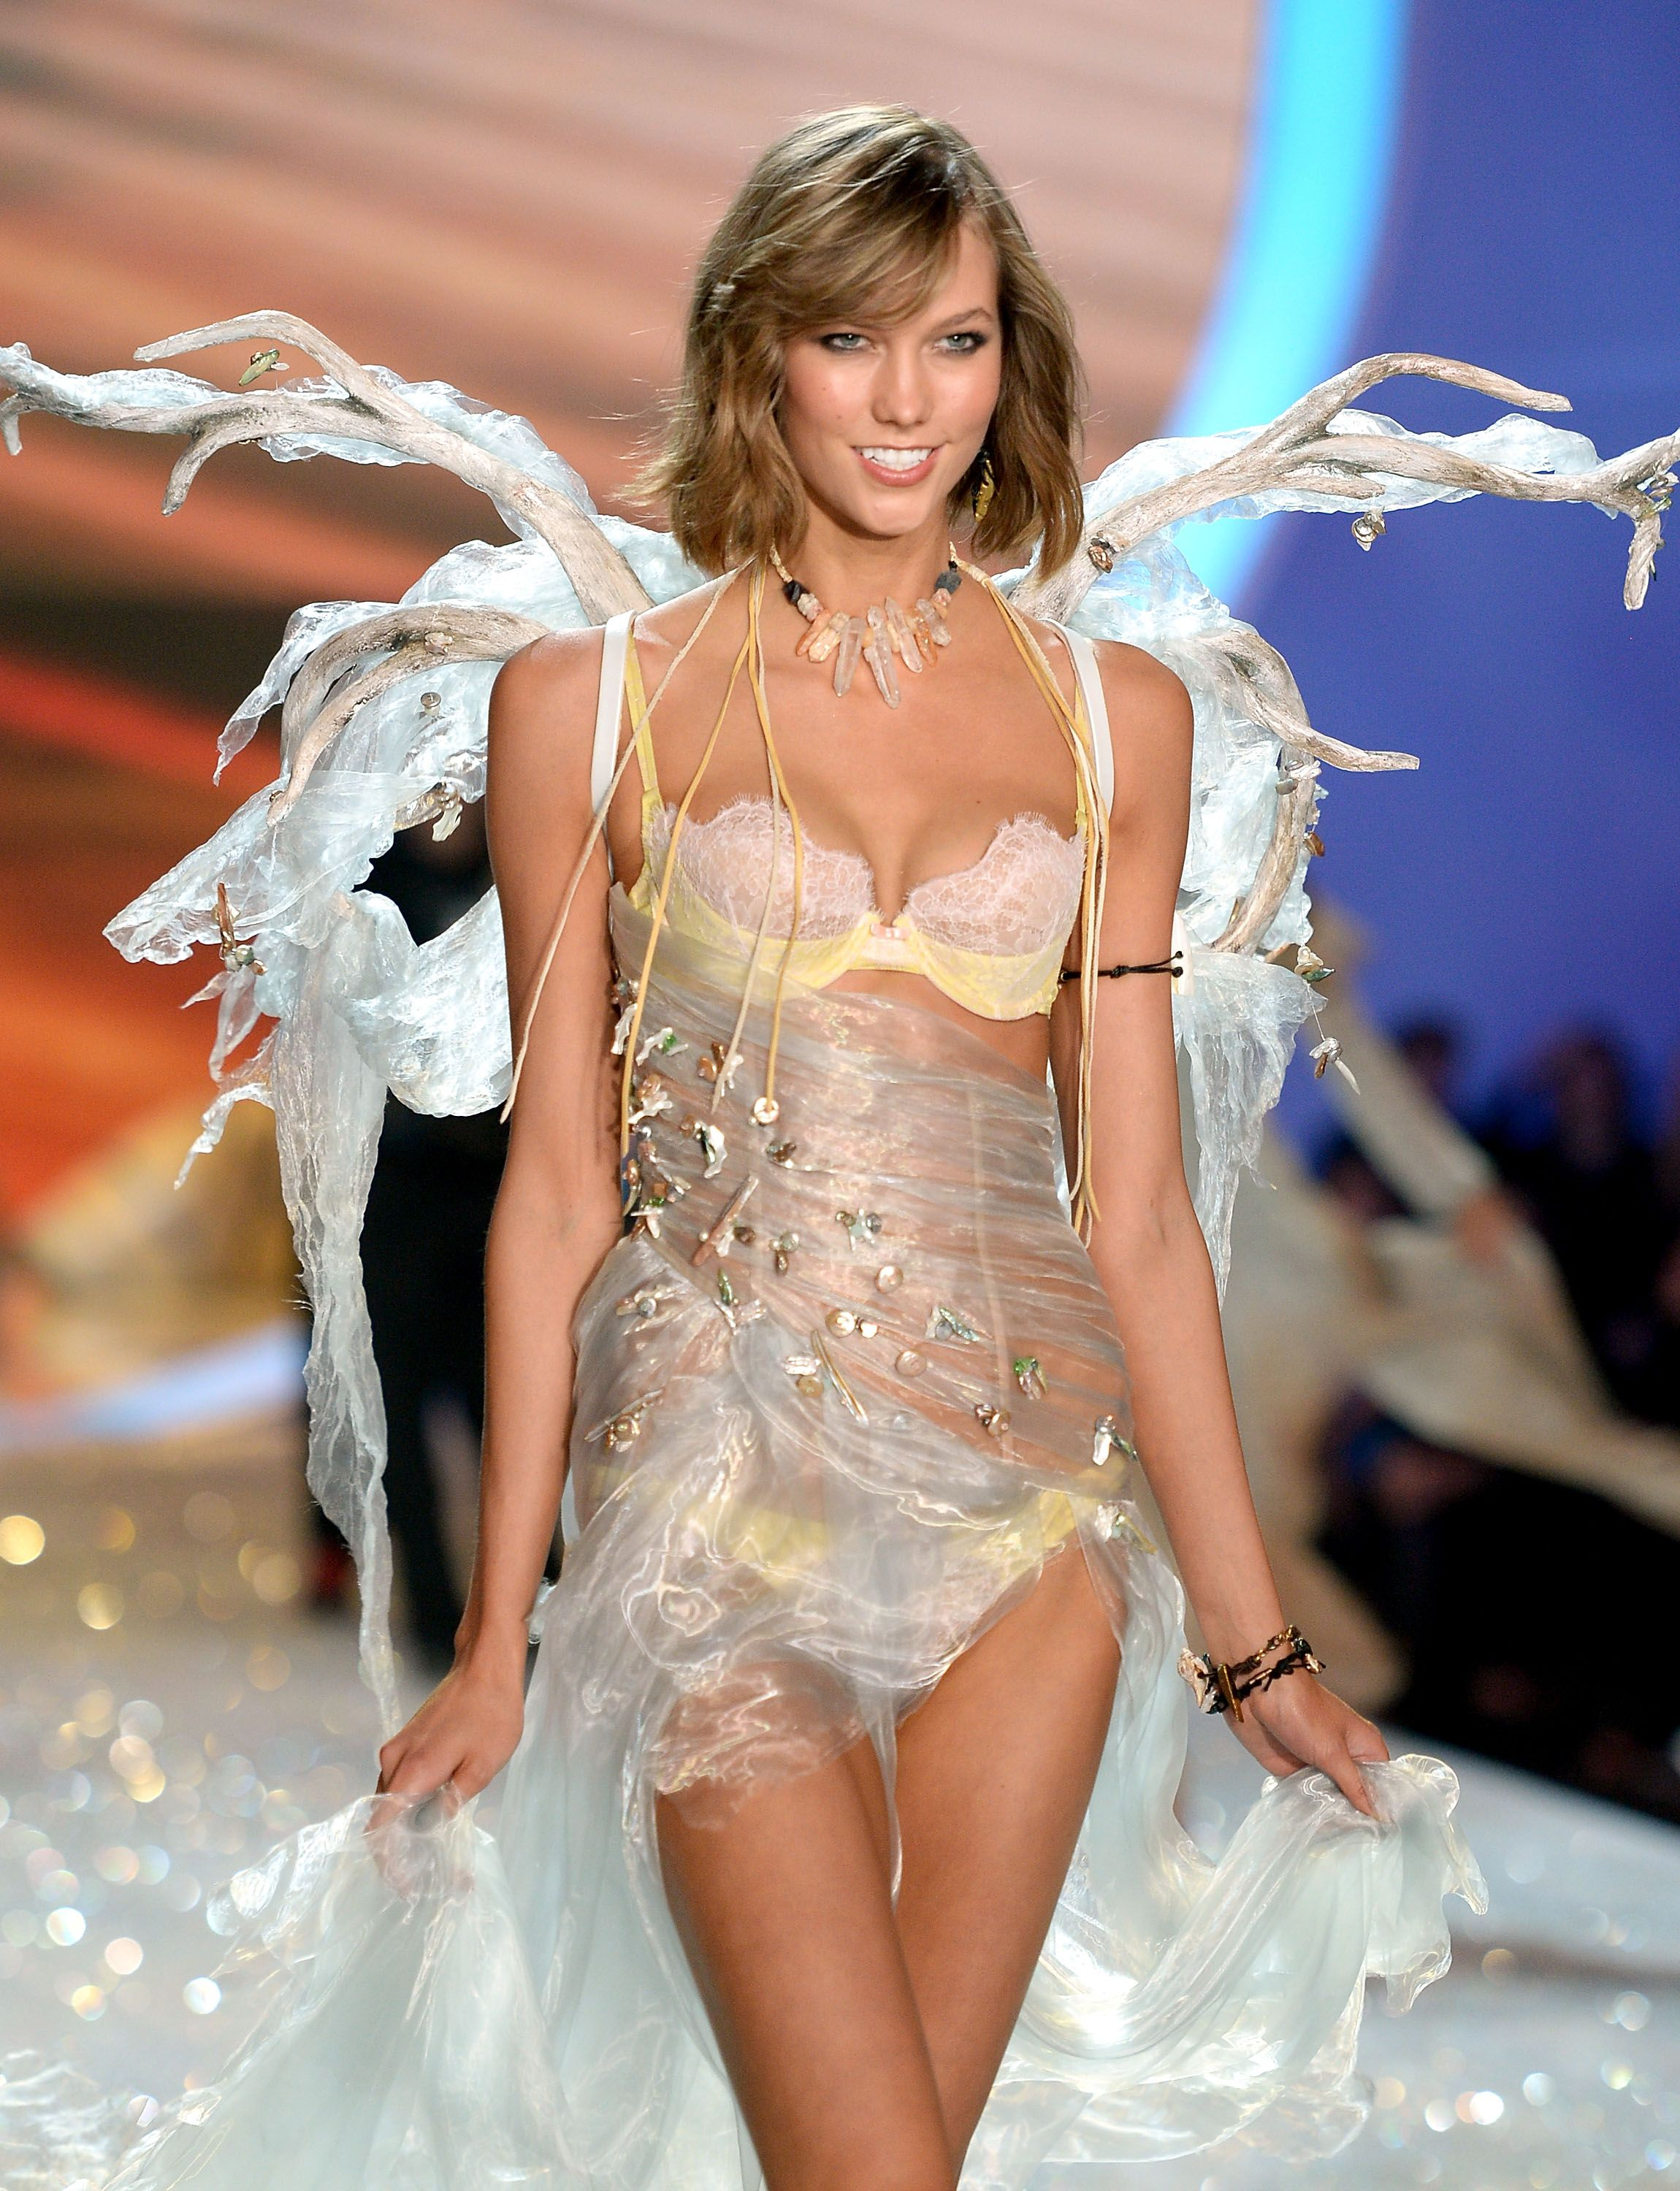 Discussion on this topic: Small cock, karlie-kloss-tits/